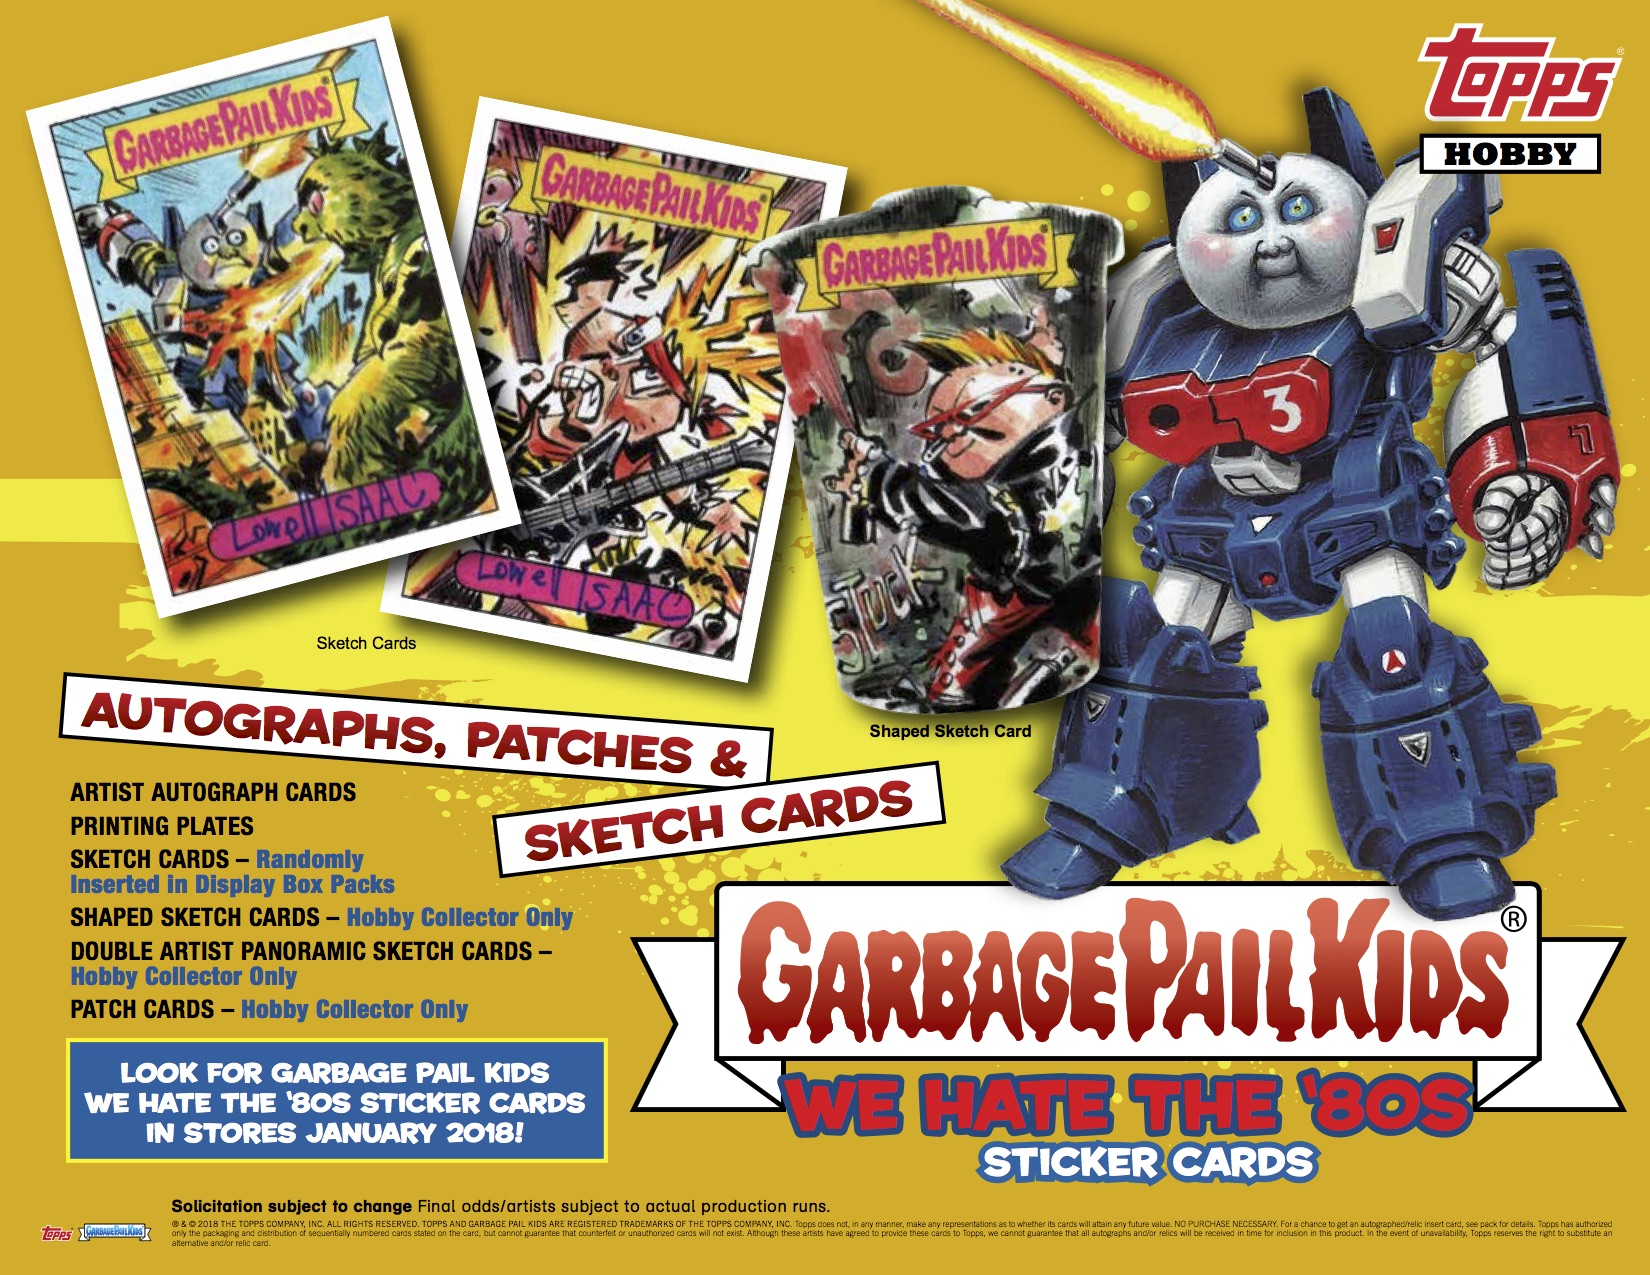 04ae5e37d0a There is also a gallery of examples of the cards for the new set. 2018S1 GPK  We Hate the 80 s is set to hit stores in Jan. 17